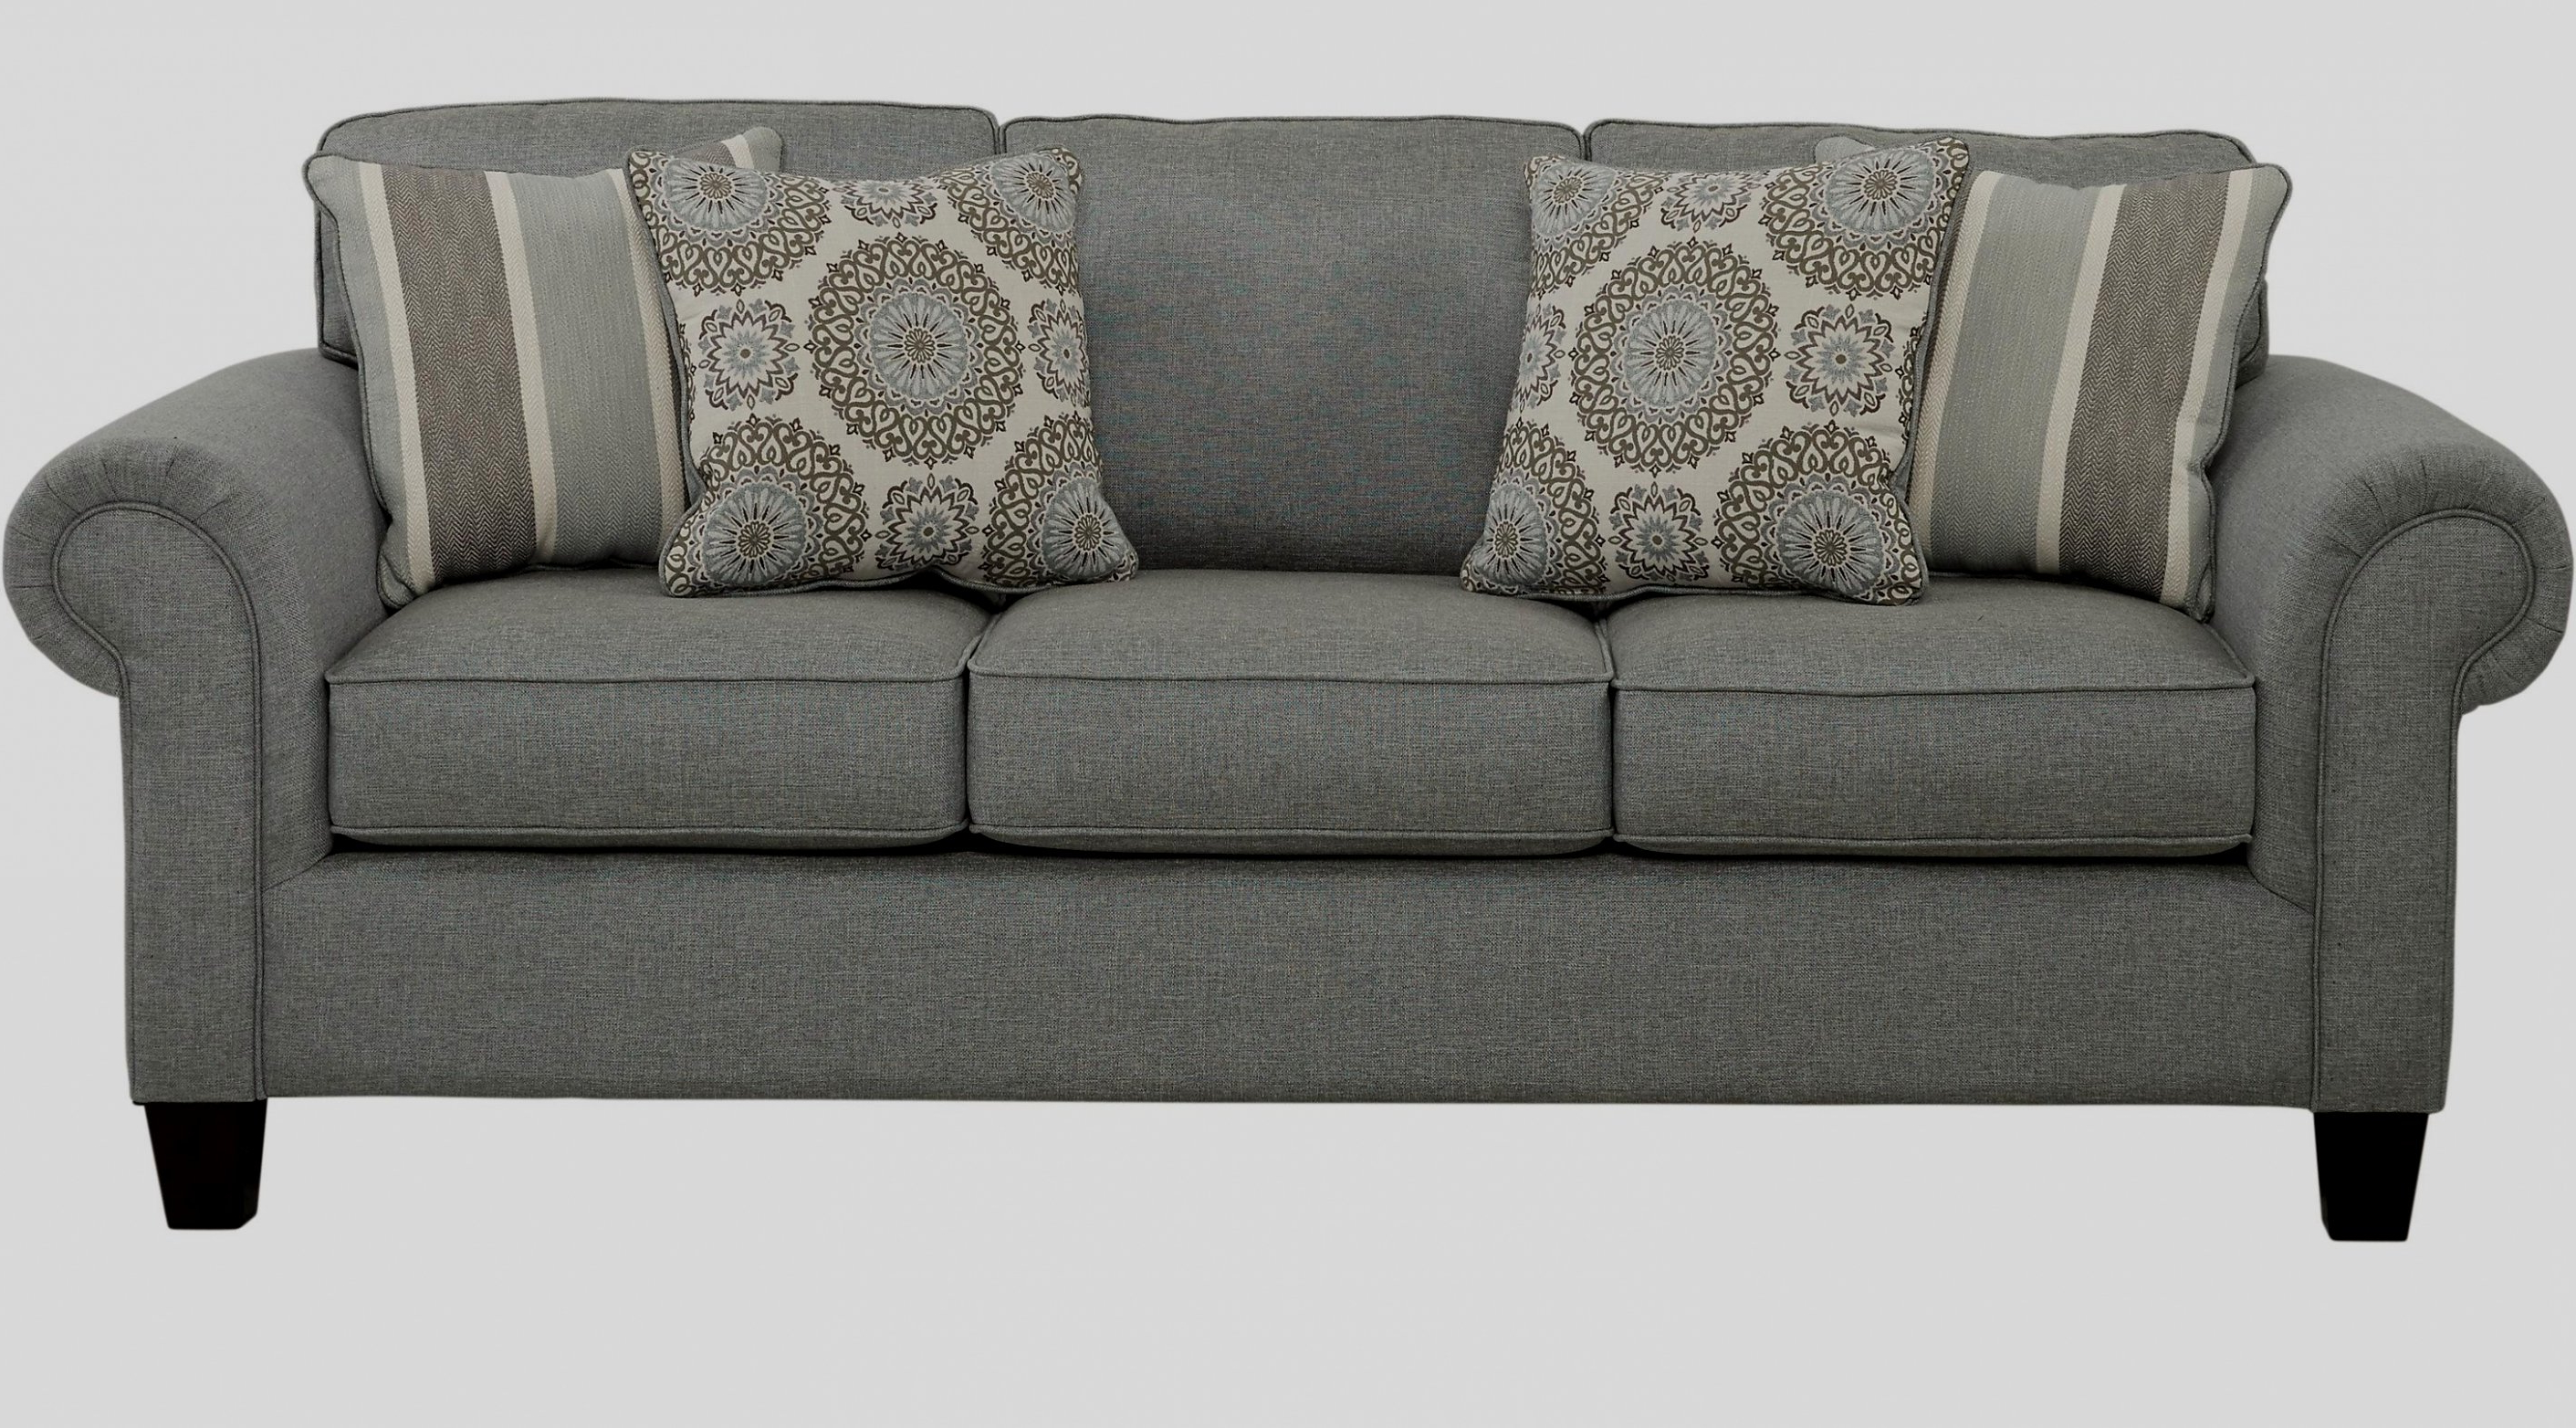 outlet sofas sofa with metal legs uk online dwdk restoration hardware reviews co tldn especial mit led yct projekte busco sillas